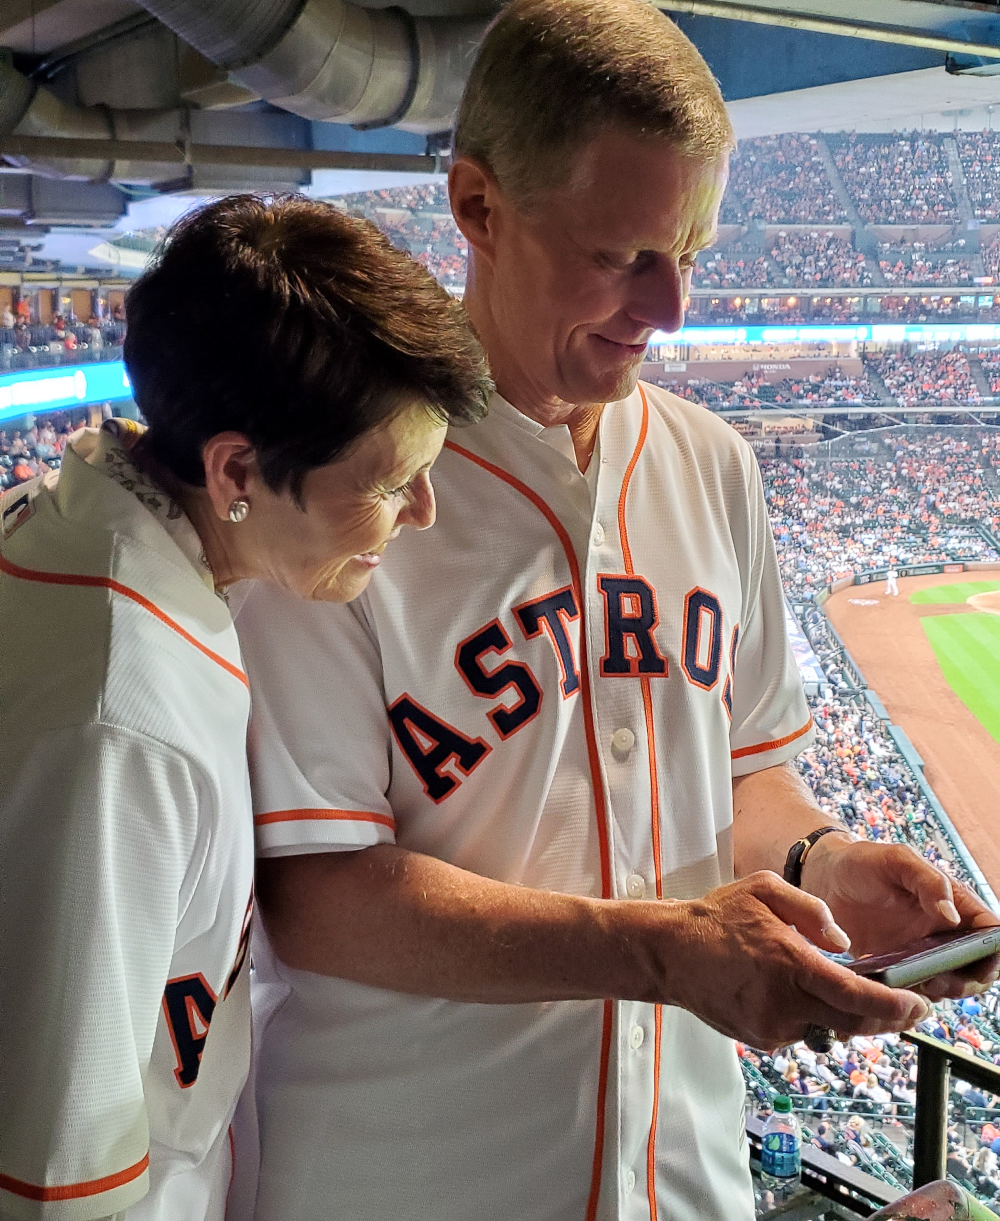 Sister Susan Bednar and Elder David A. Bednar watch the video of his ceremonial first pitch delivered at Minute Maid park.